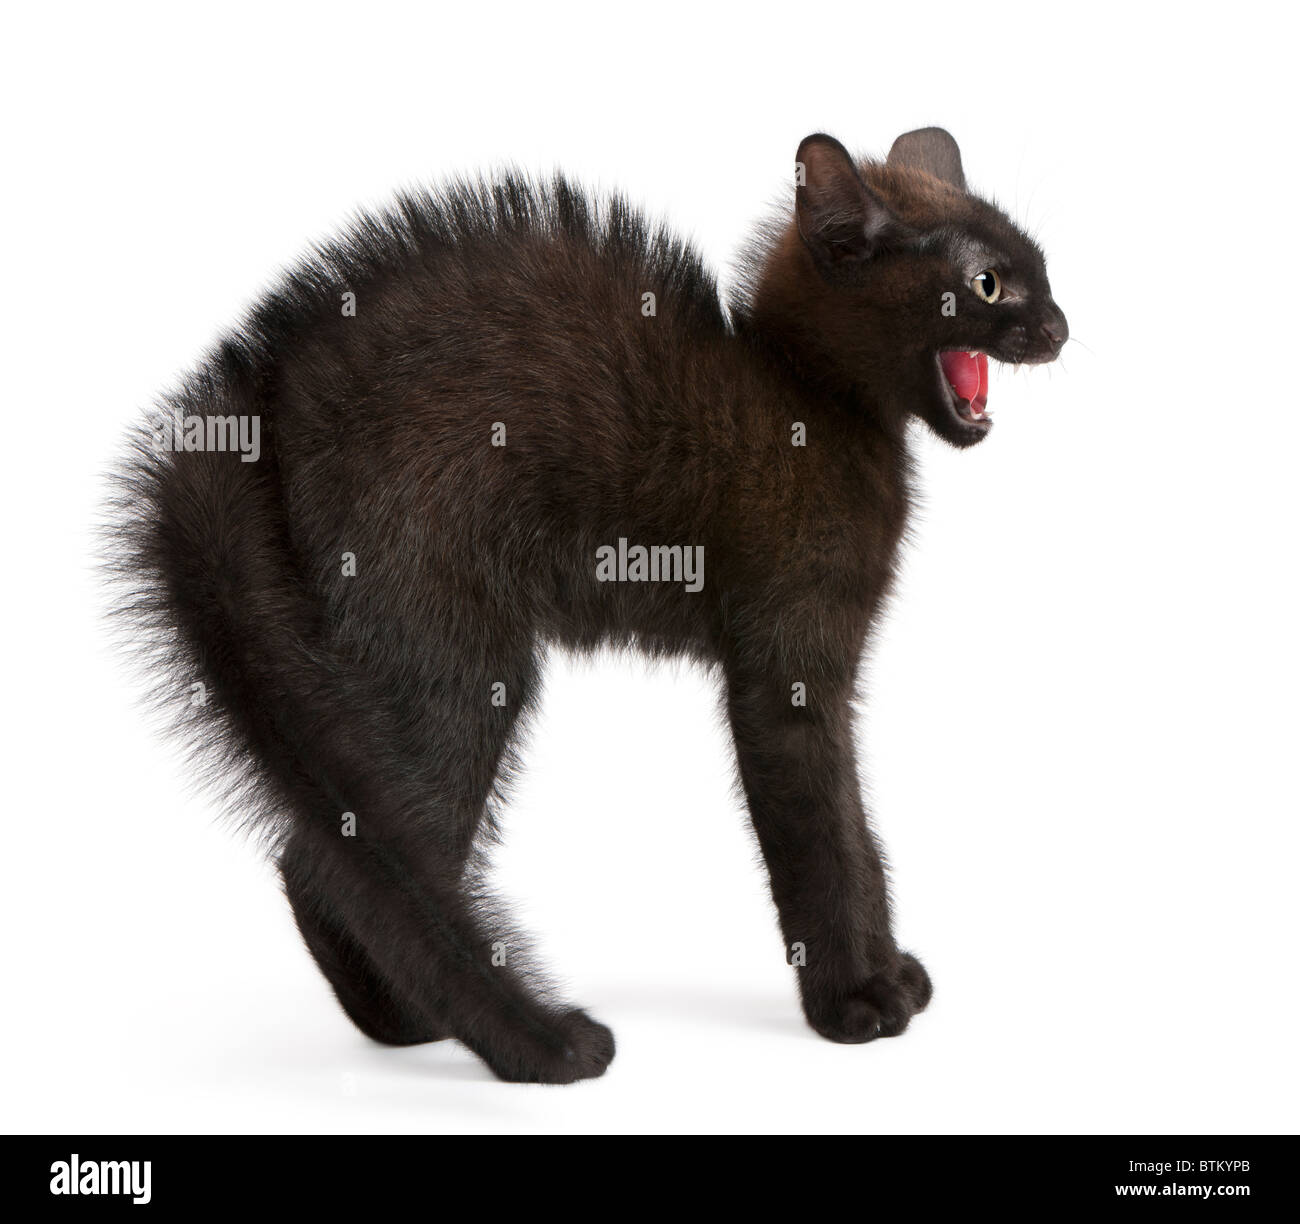 Frightened black kitten standing in front of white background - Stock Image